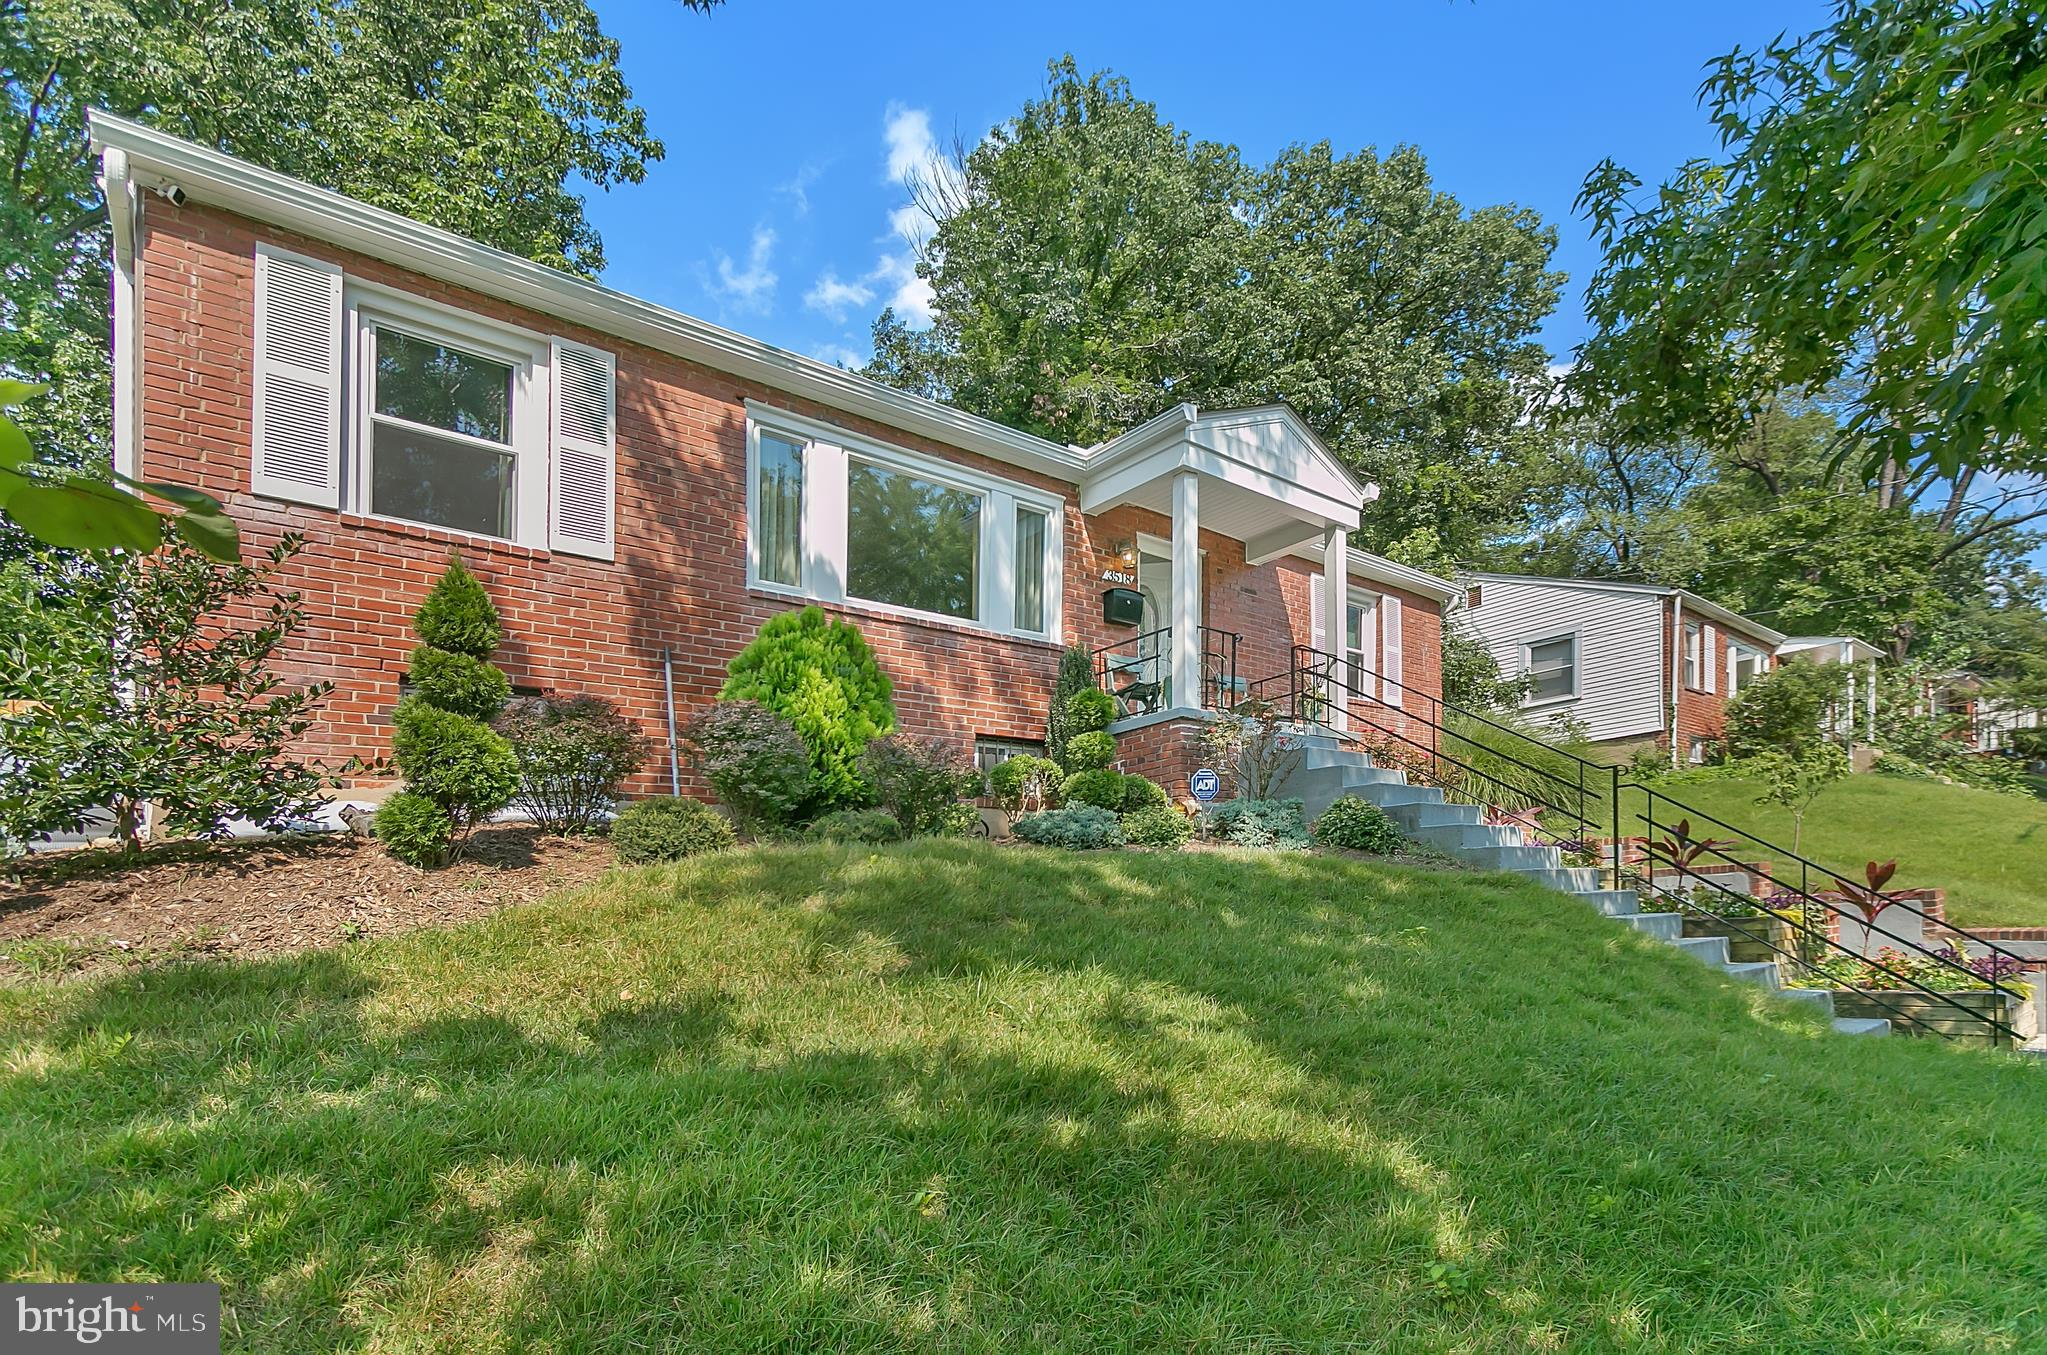 3518 28TH PARKWAY, TEMPLE HILLS, MD 20748